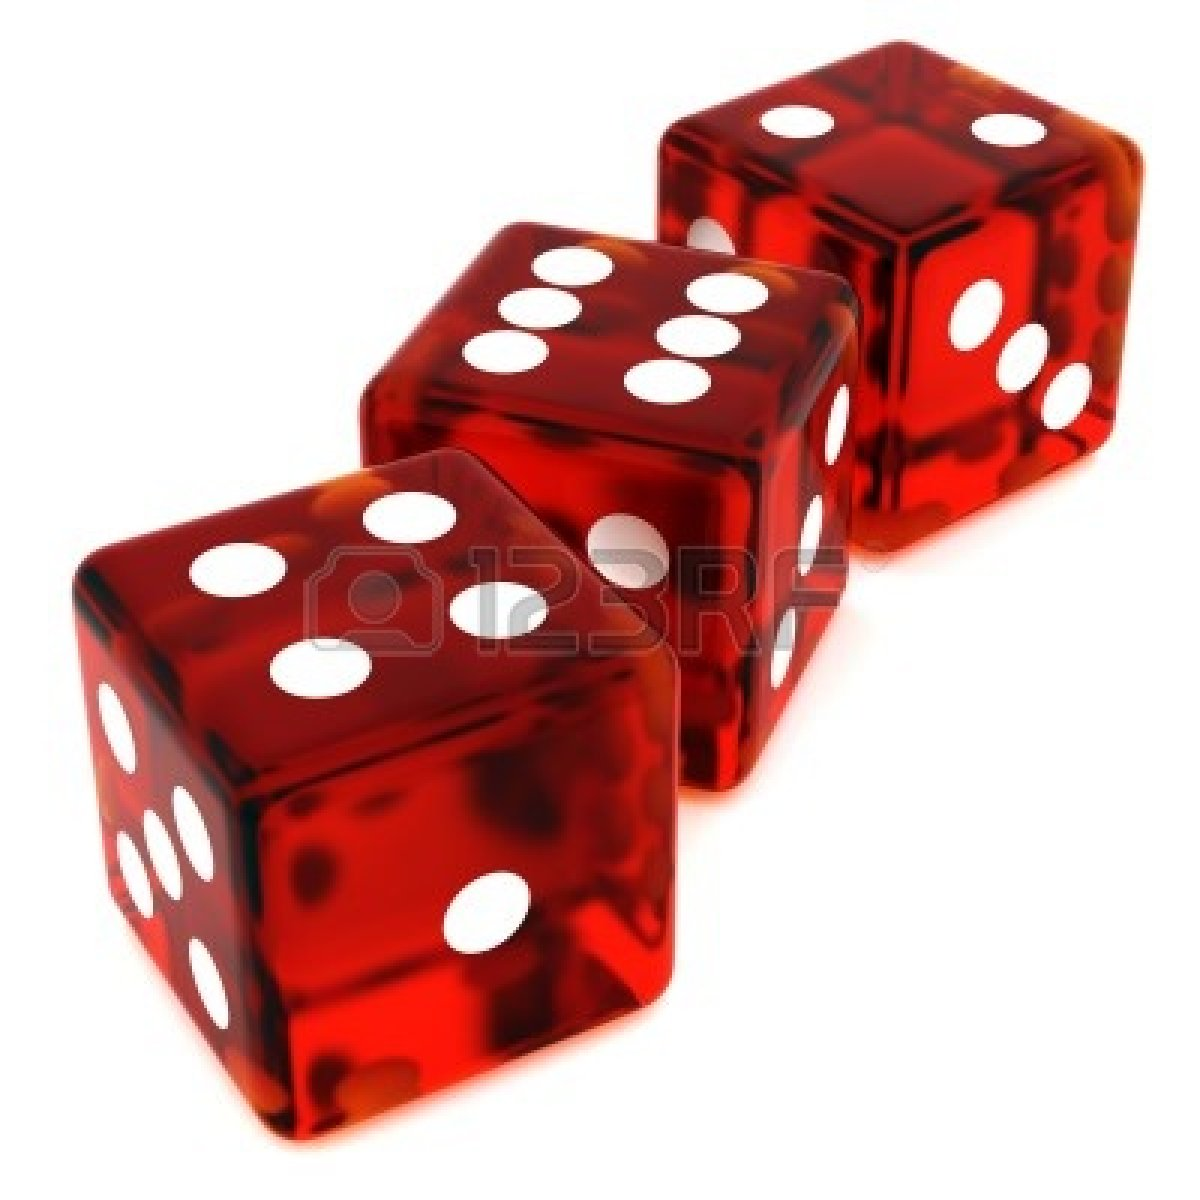 3 red dice clipart image transparent stock 3D Red rolling dice on white   Clipart Panda - Free Clipart Images image transparent stock